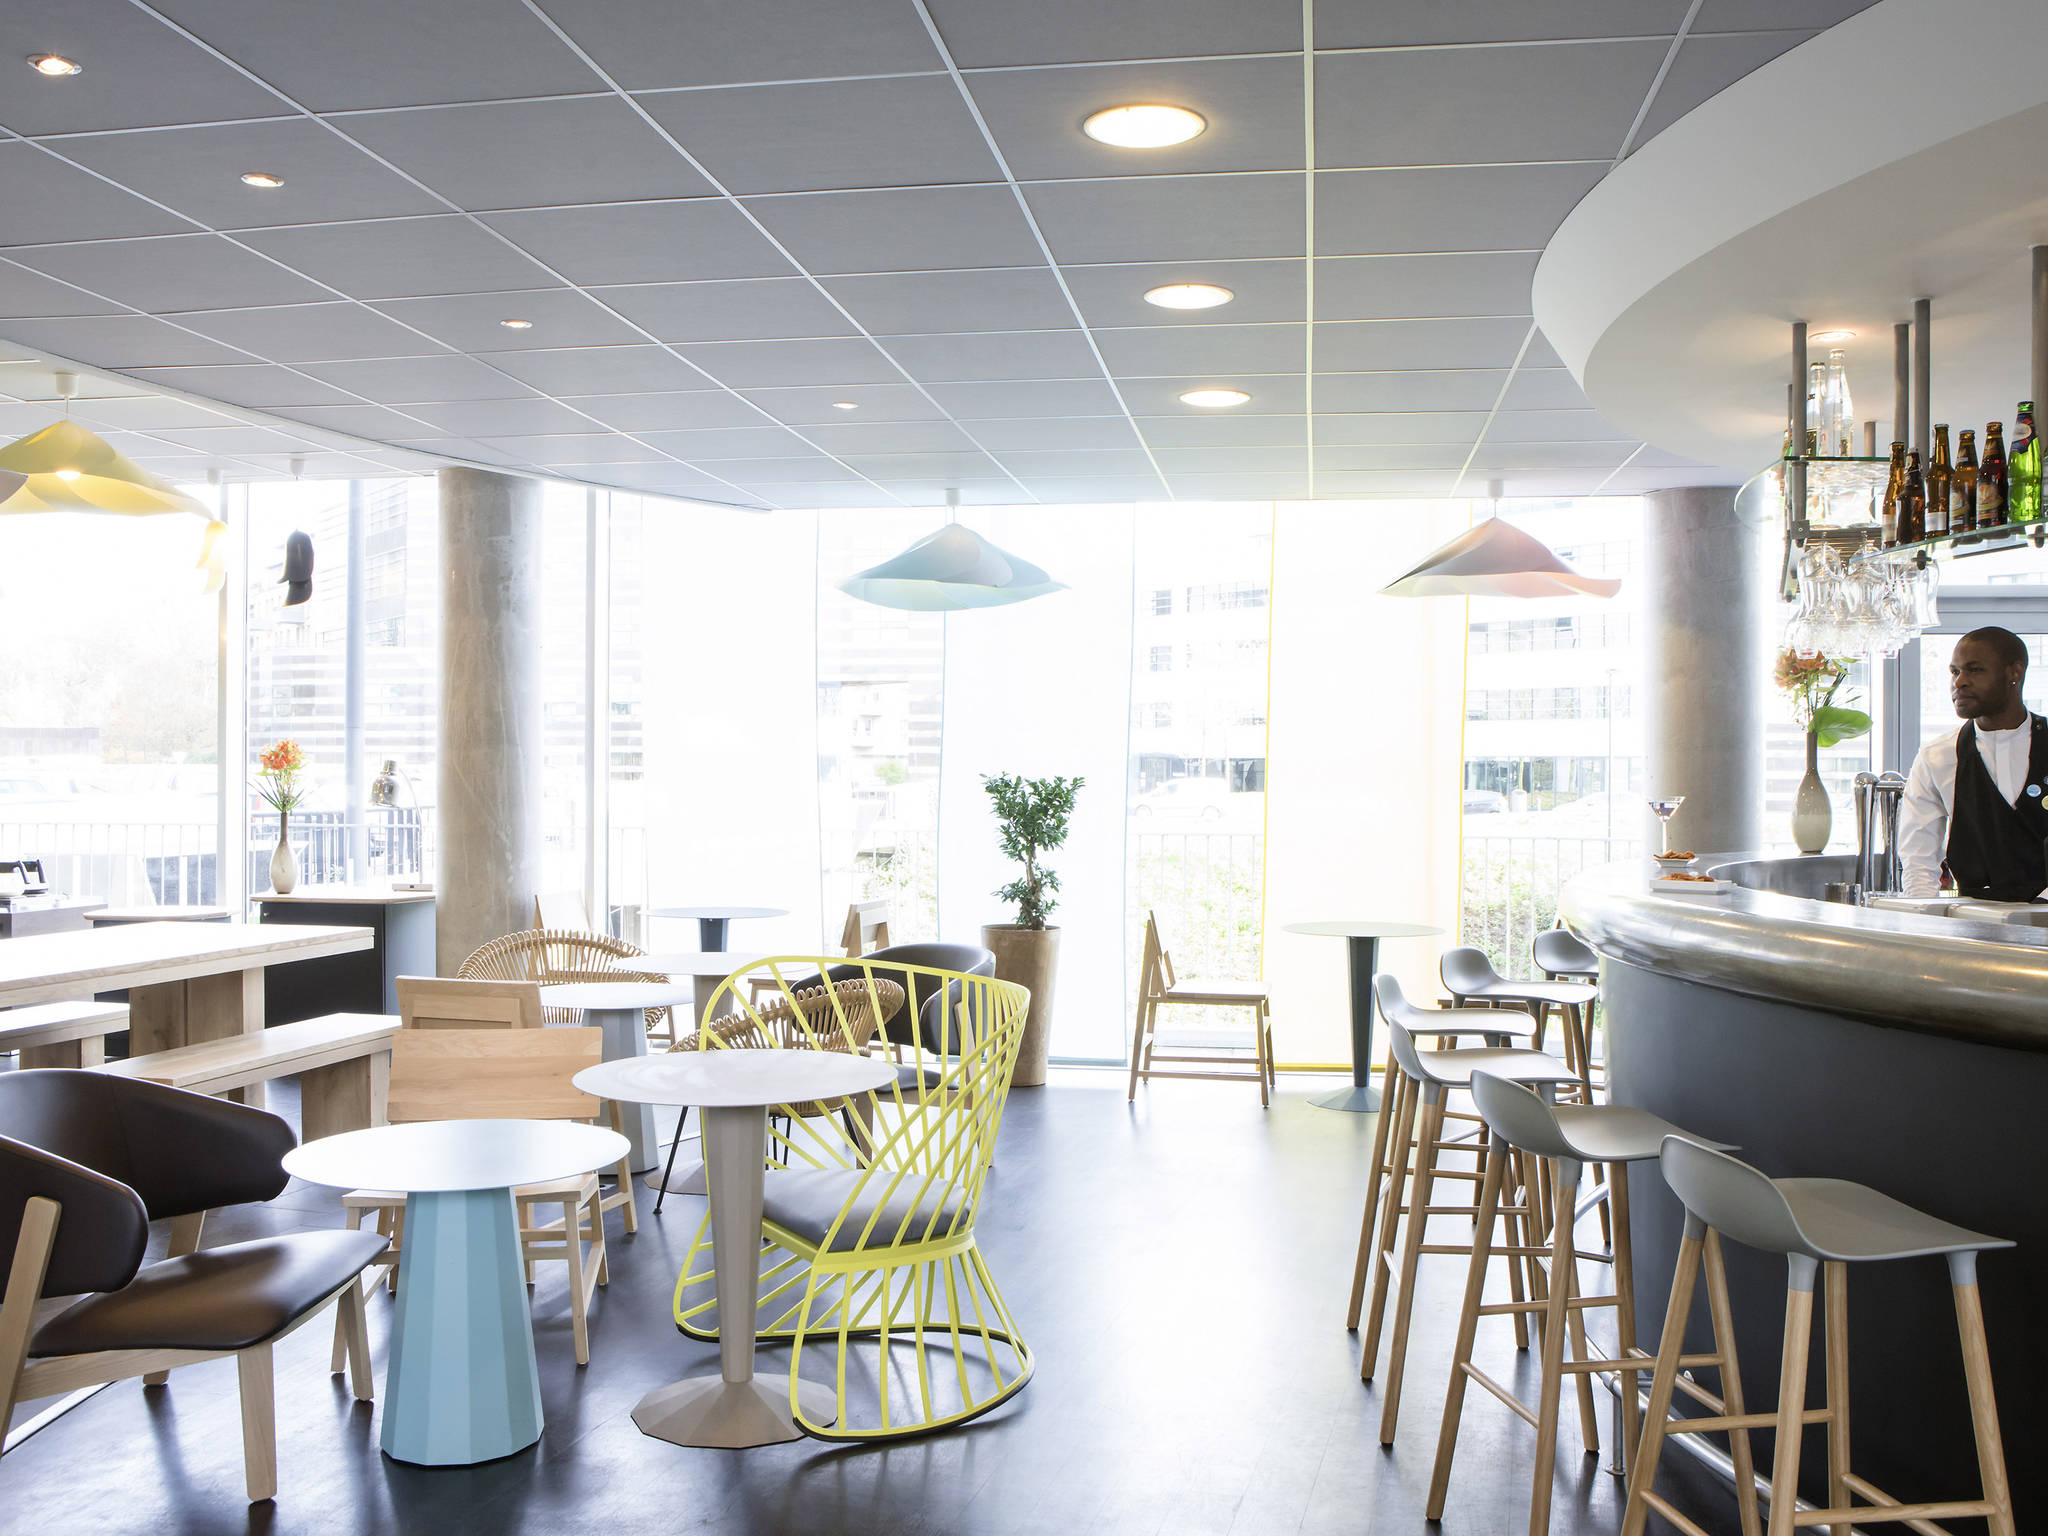 Le Comptoir 126 Lille hotel in lille - novotel suites gare lille europe